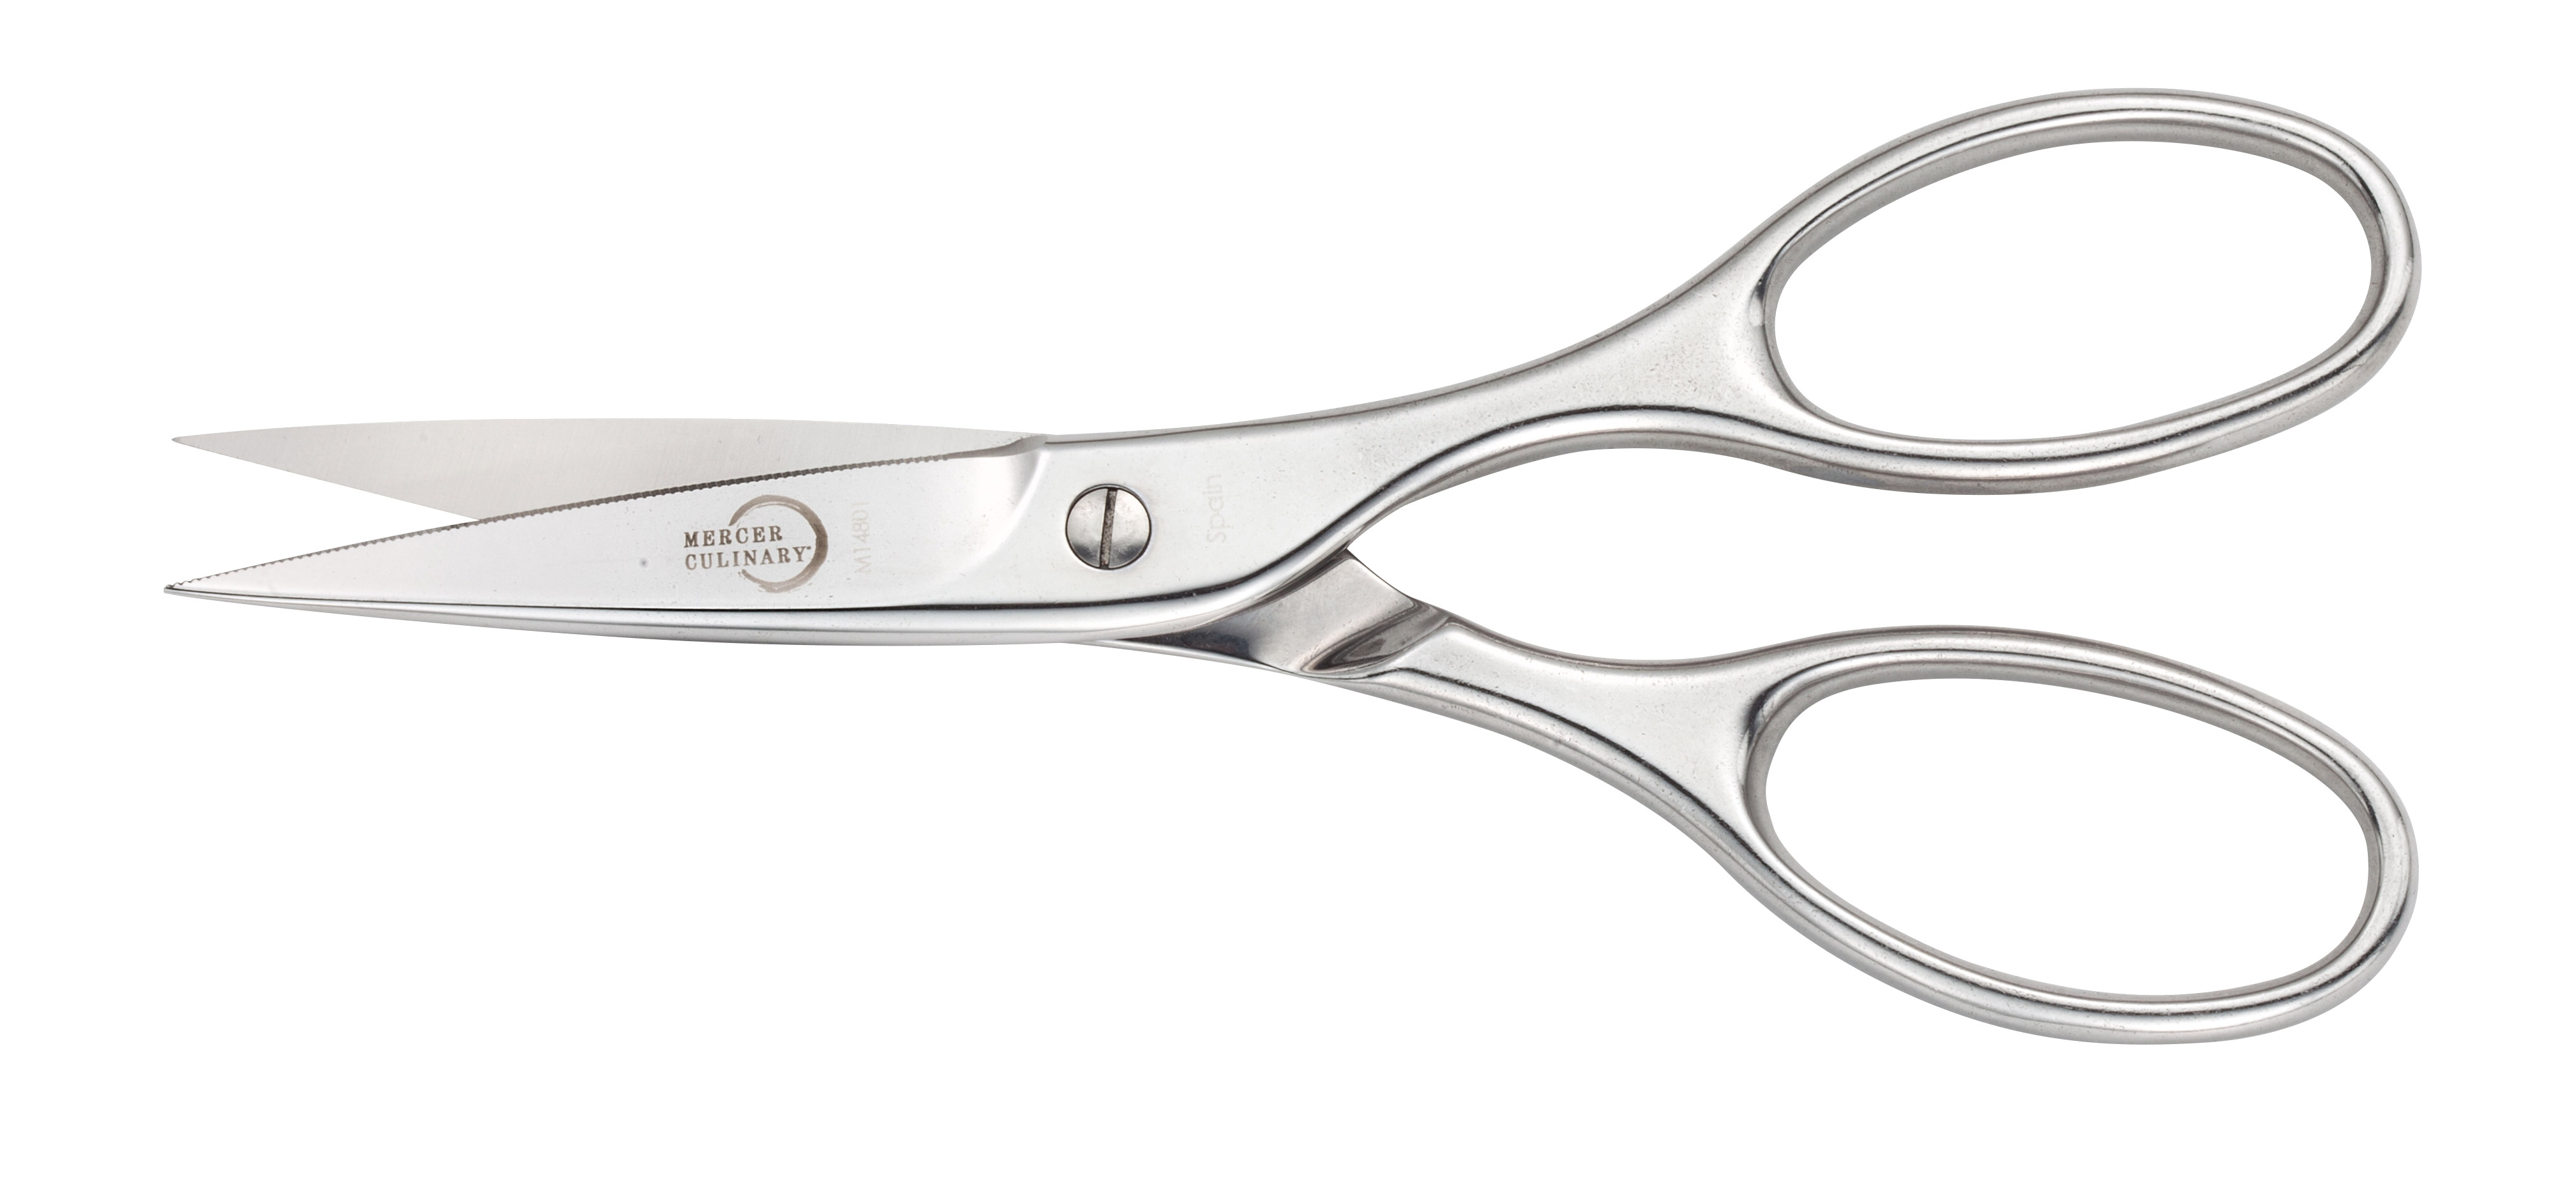 Mercer Culinary M14801 kitchen shears